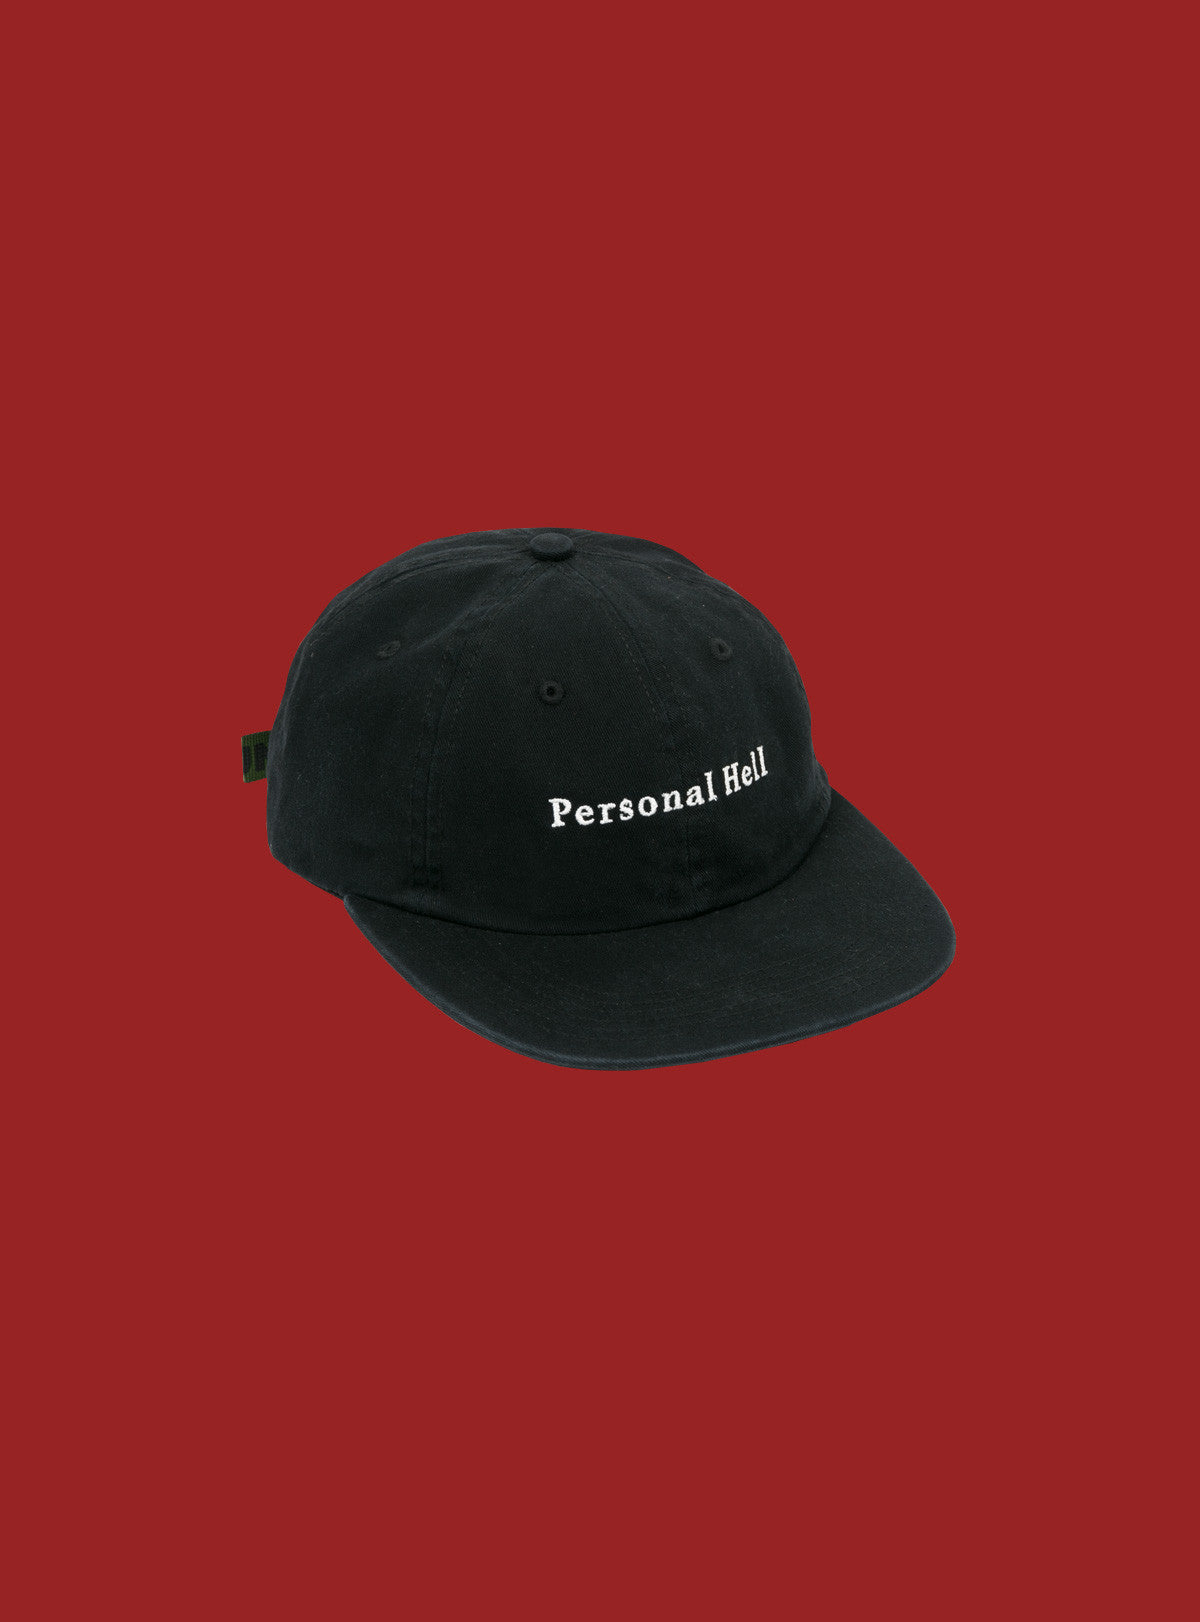 Personal Hell Hat